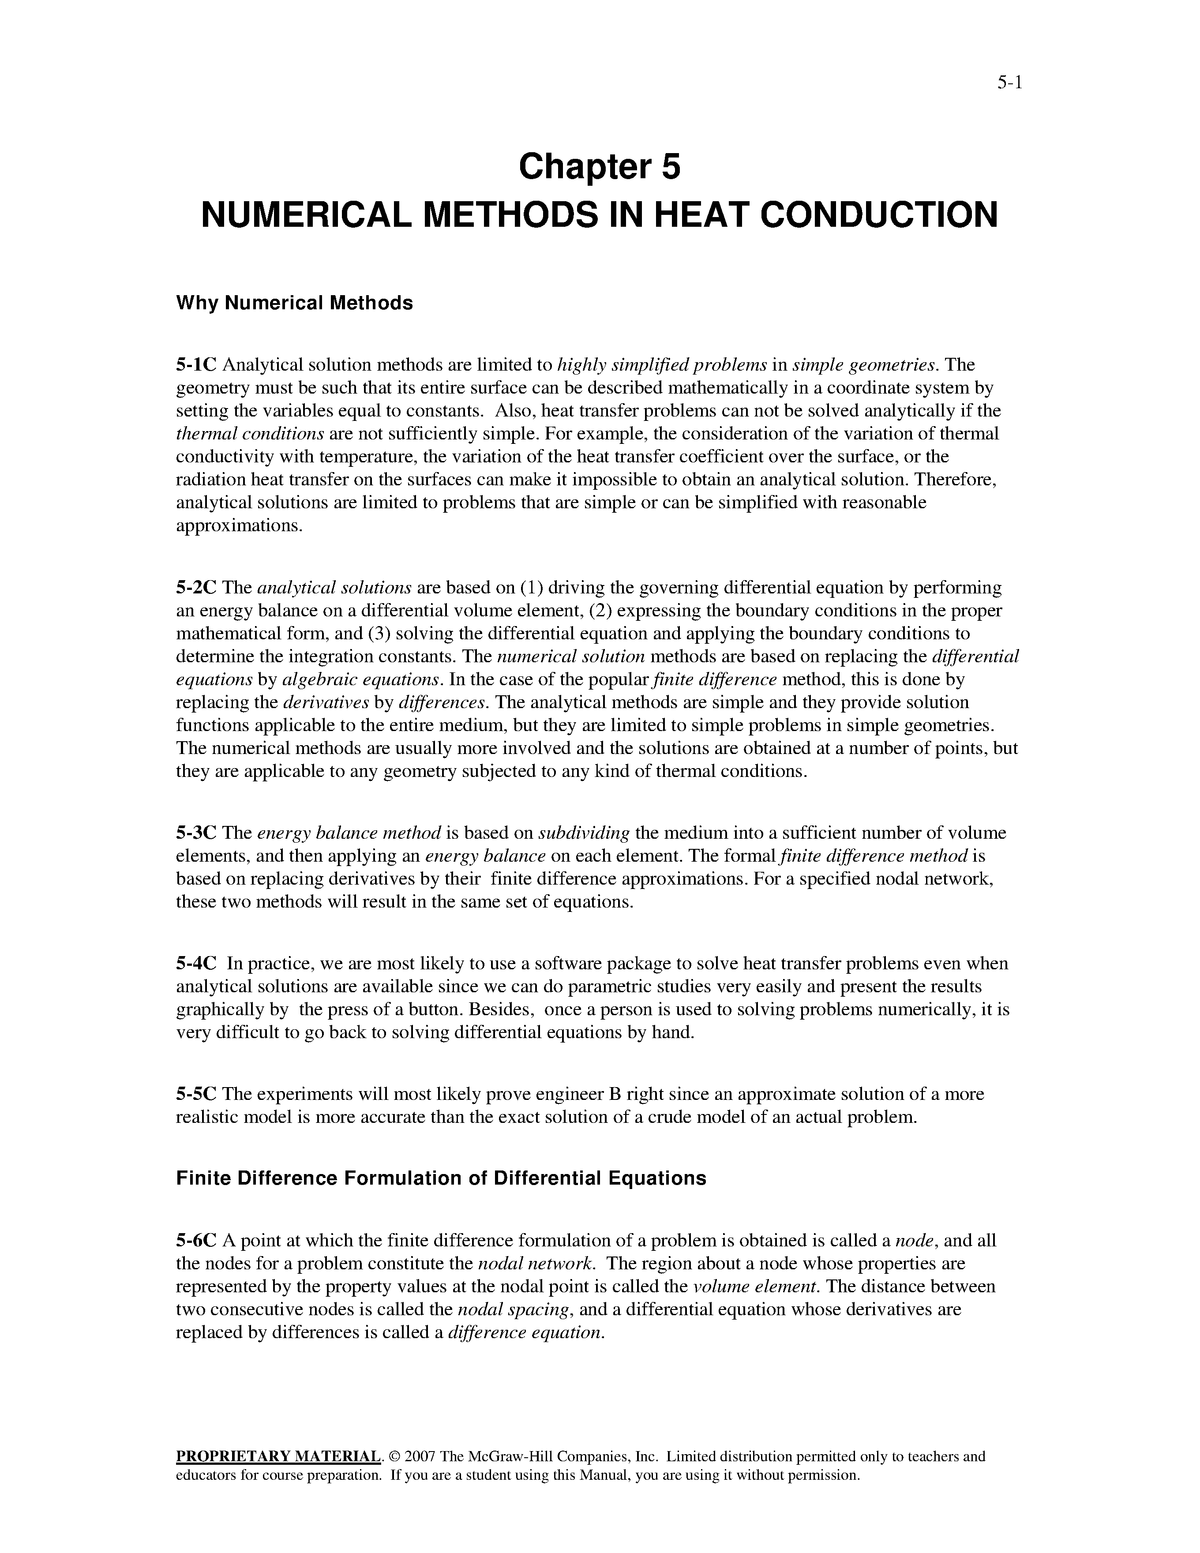 Solution Manual Heat And Mass Transfer A Practical Approach 3rd Edition Cengel Chapter 5 Studocu